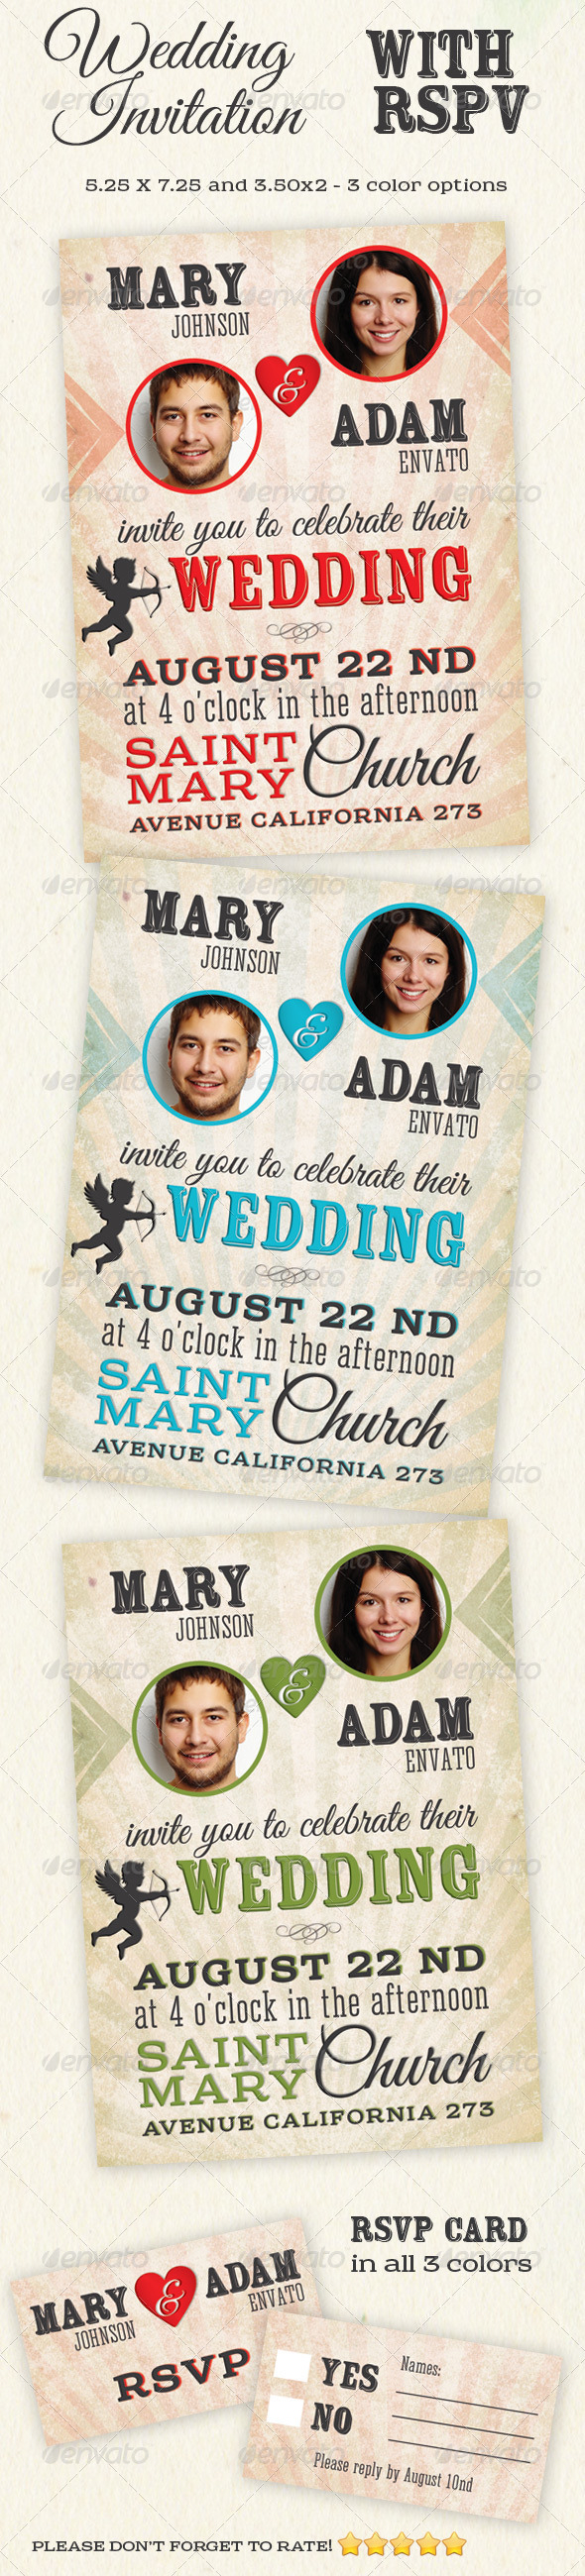 GraphicRiver Wedding Invitations with RSVP 5384684